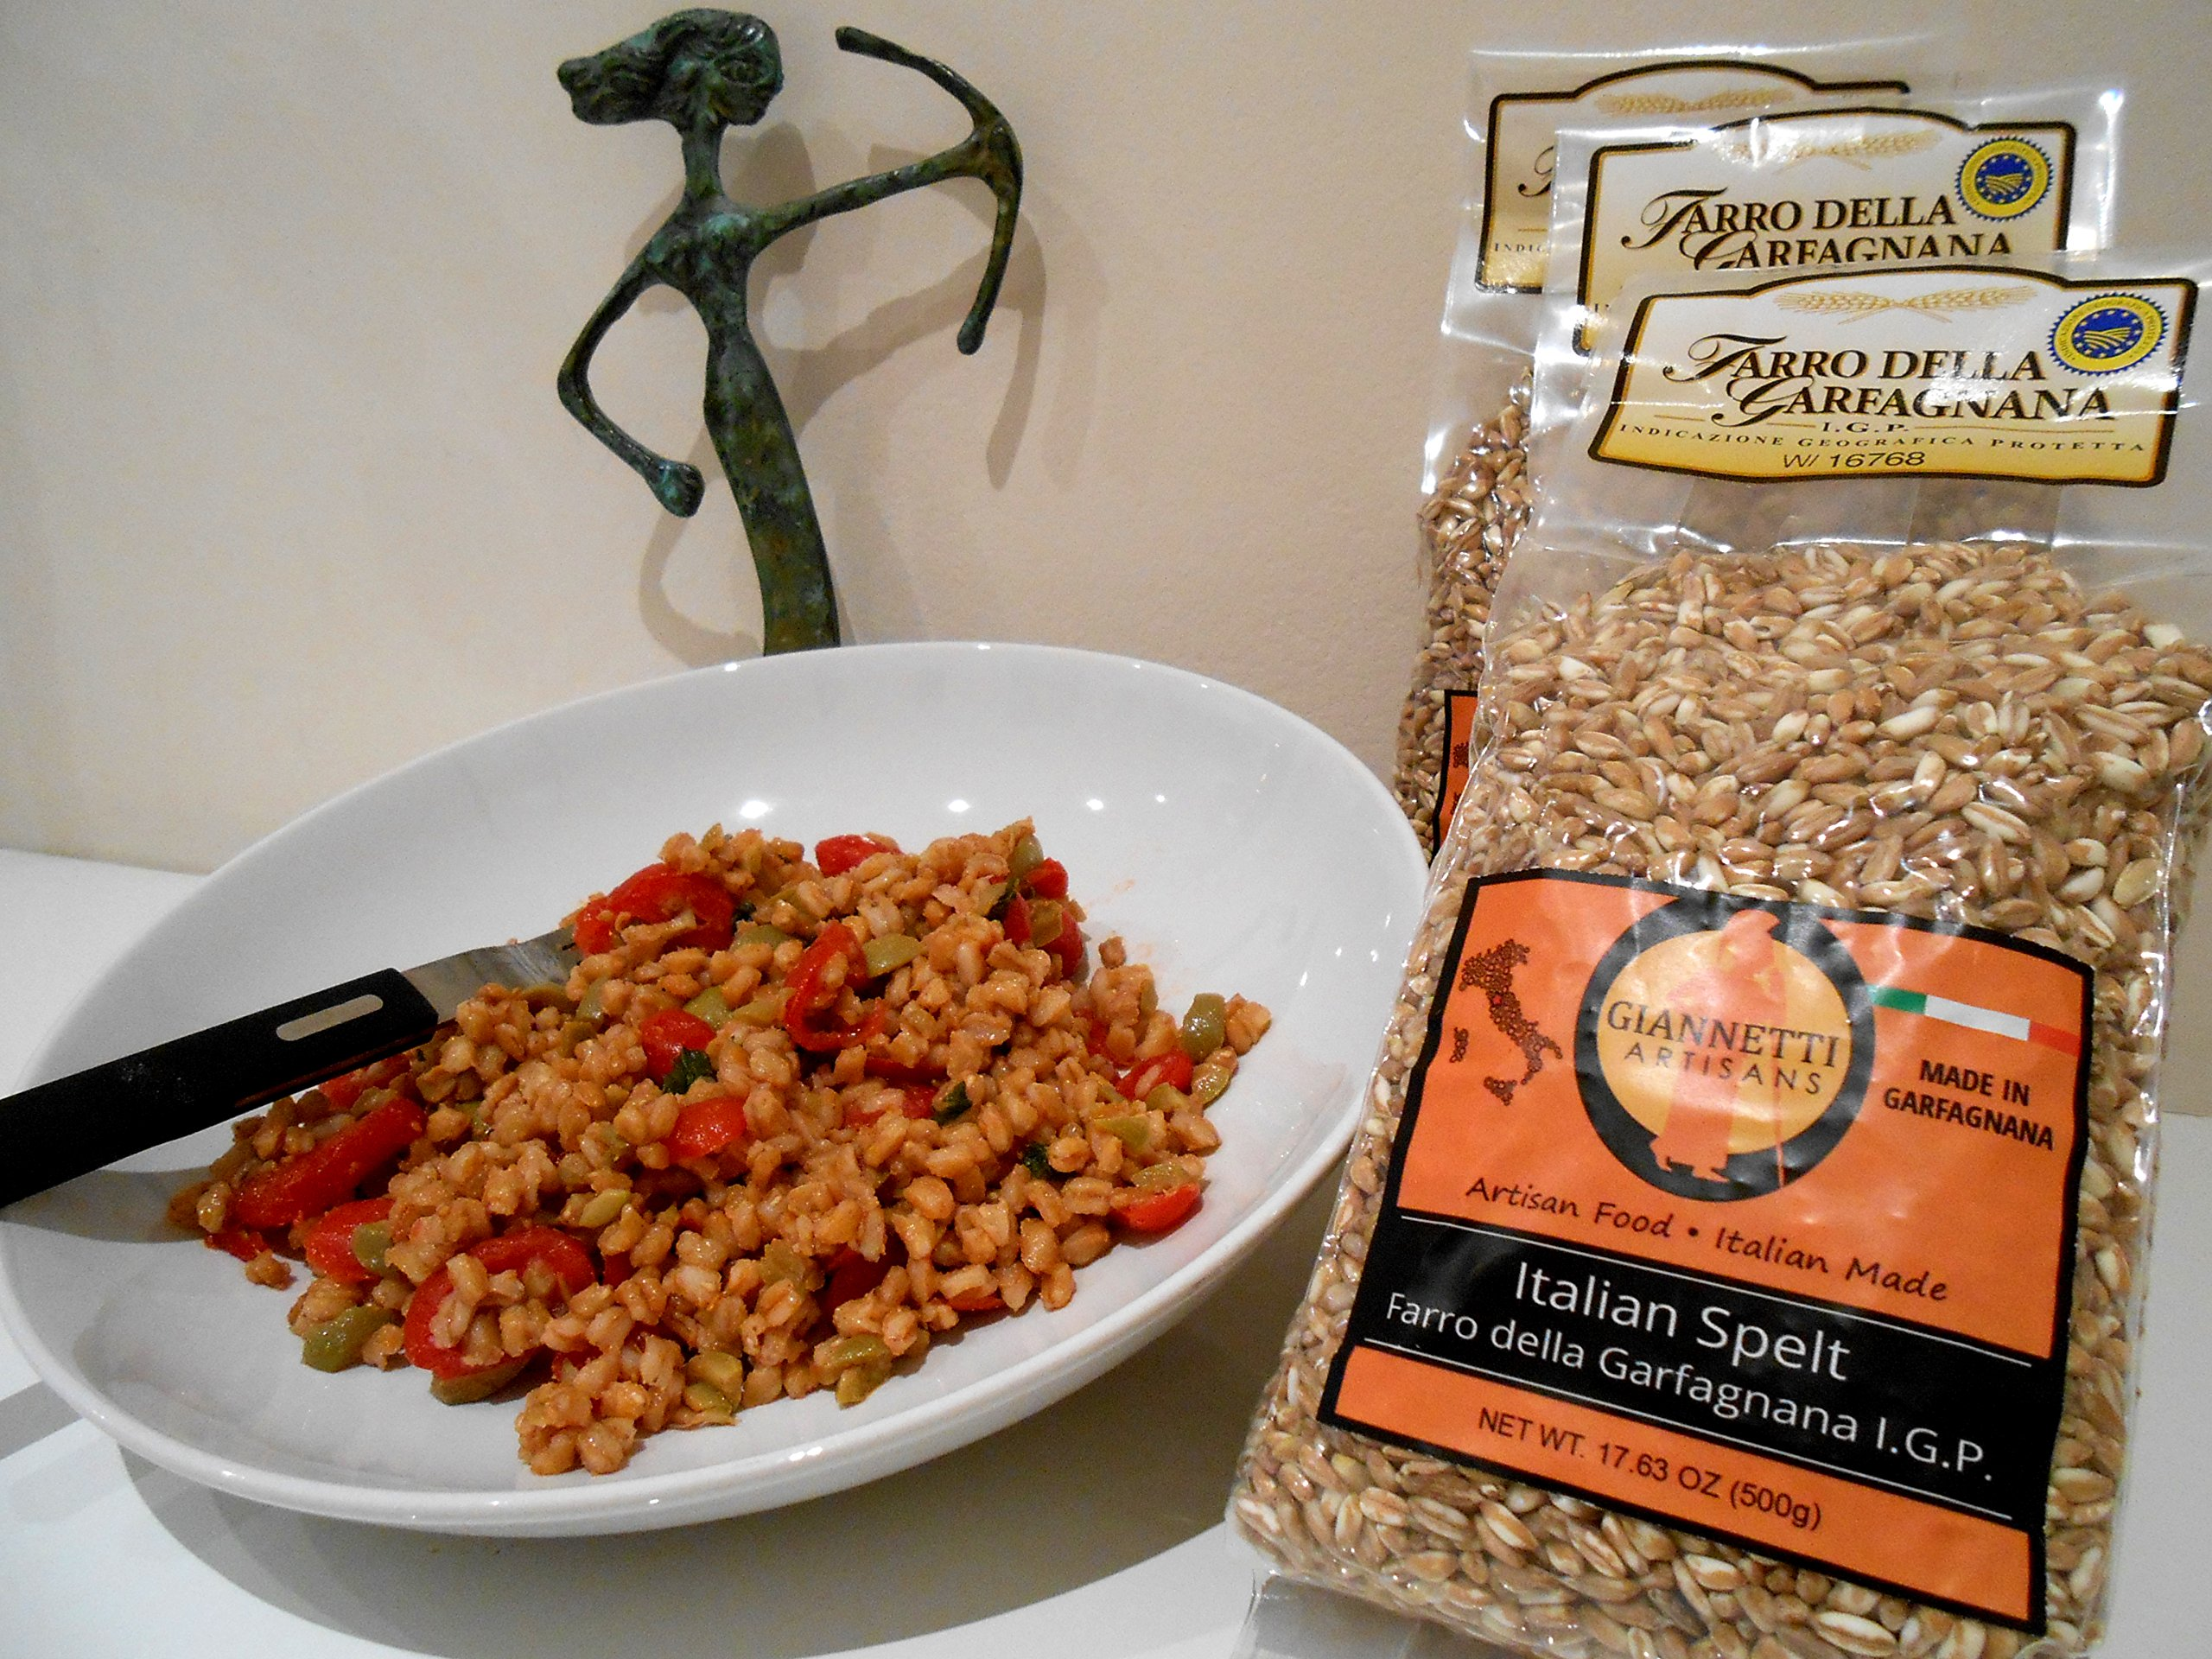 Giannetti Artisans All Natural Spelt from Tuscany IGP Certified (Farro della Garfagnana) - 1lb bag